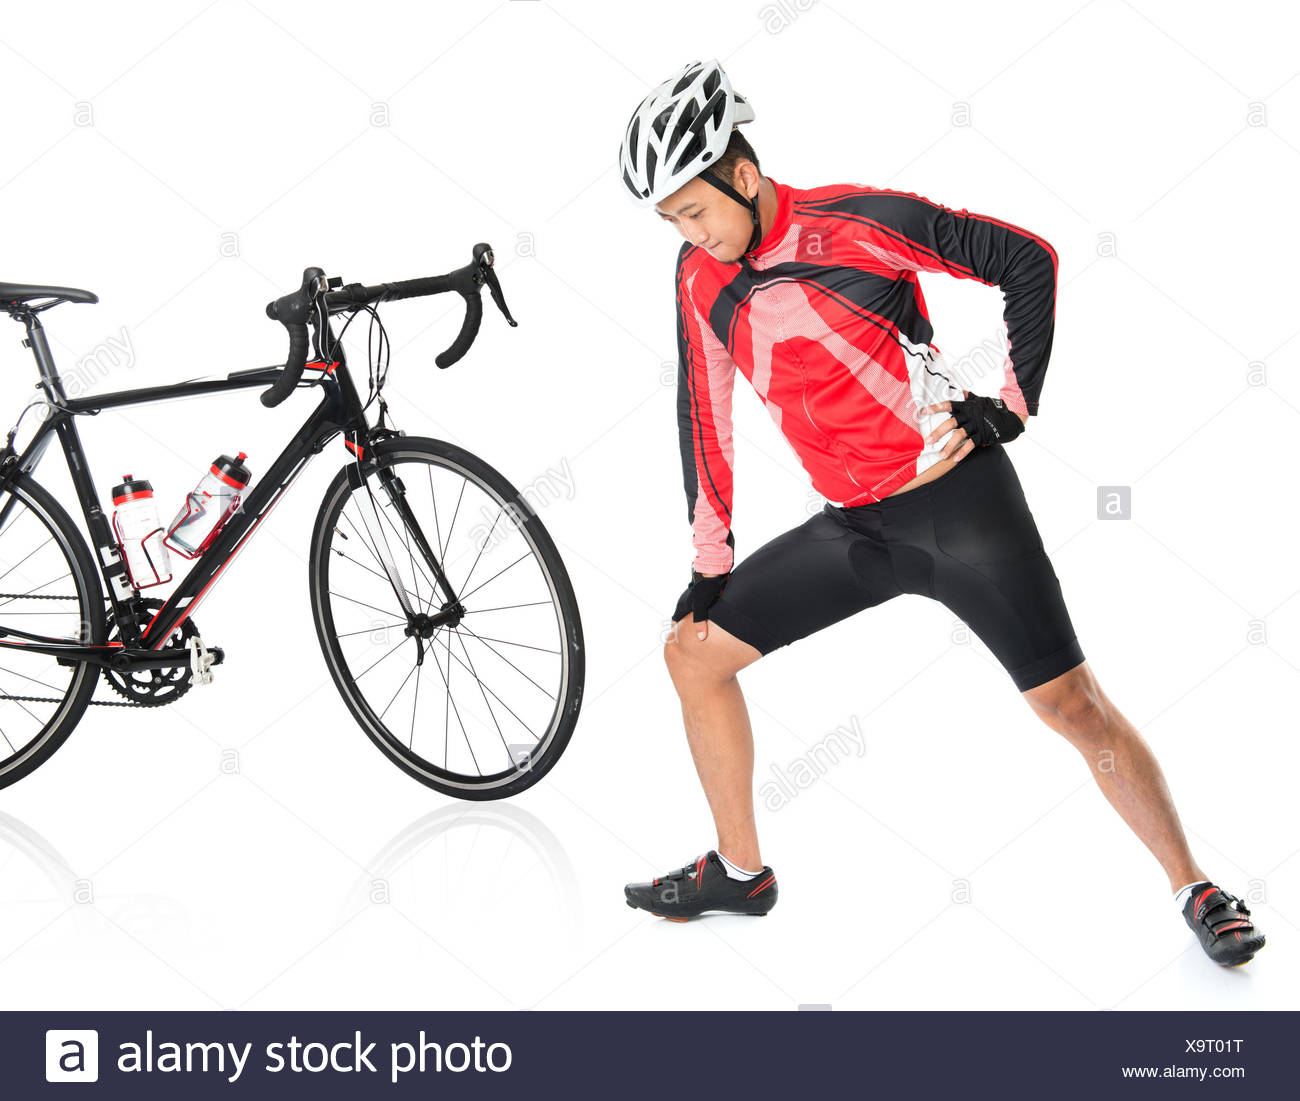 Asian biker warming up or cool down, standing beside bike, isolated on white background. Stock Photo